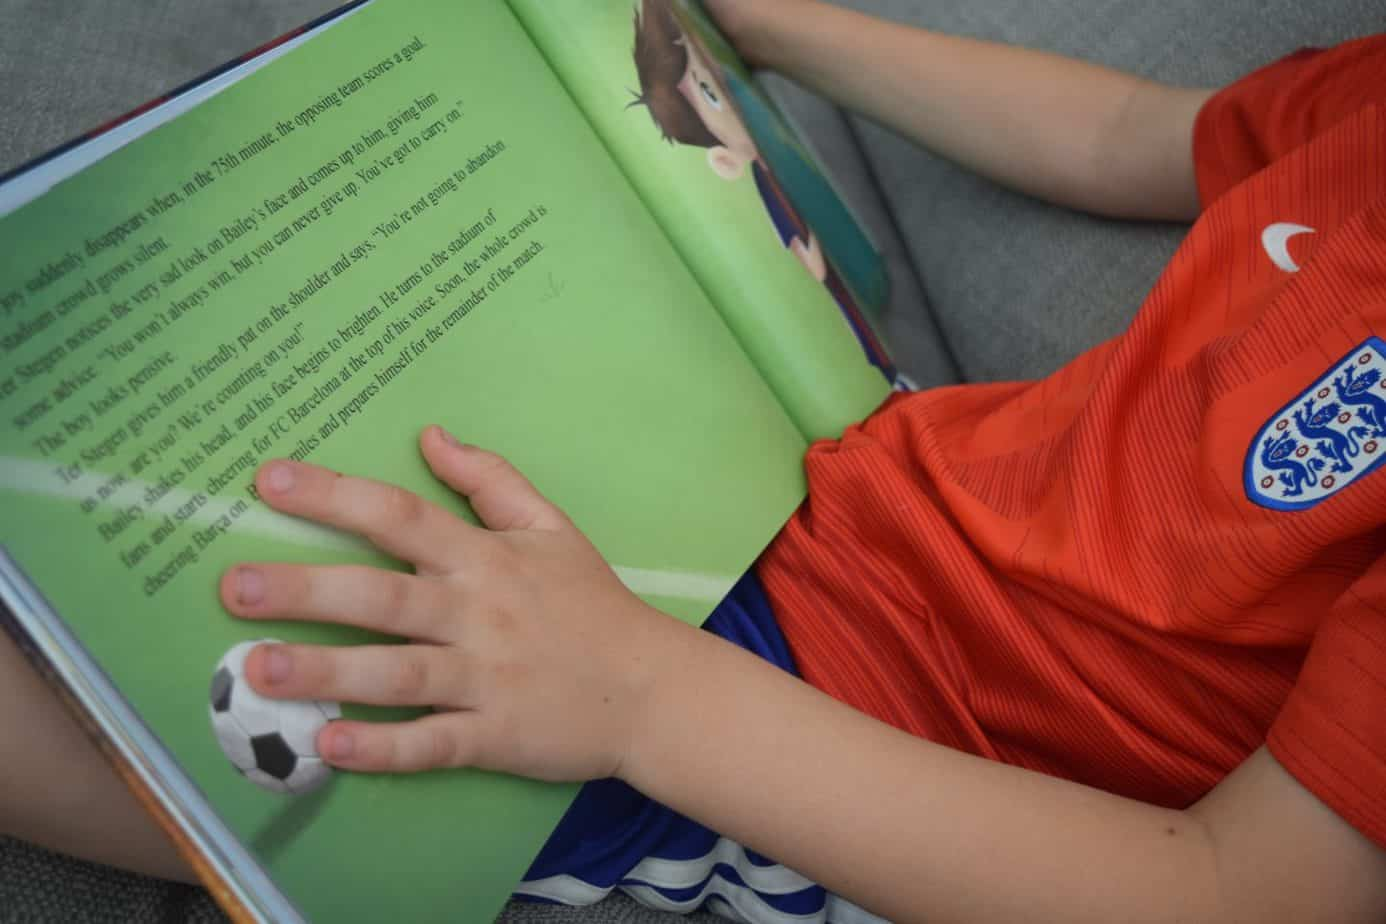 B holding his Barcelona FC book from The Magic Story